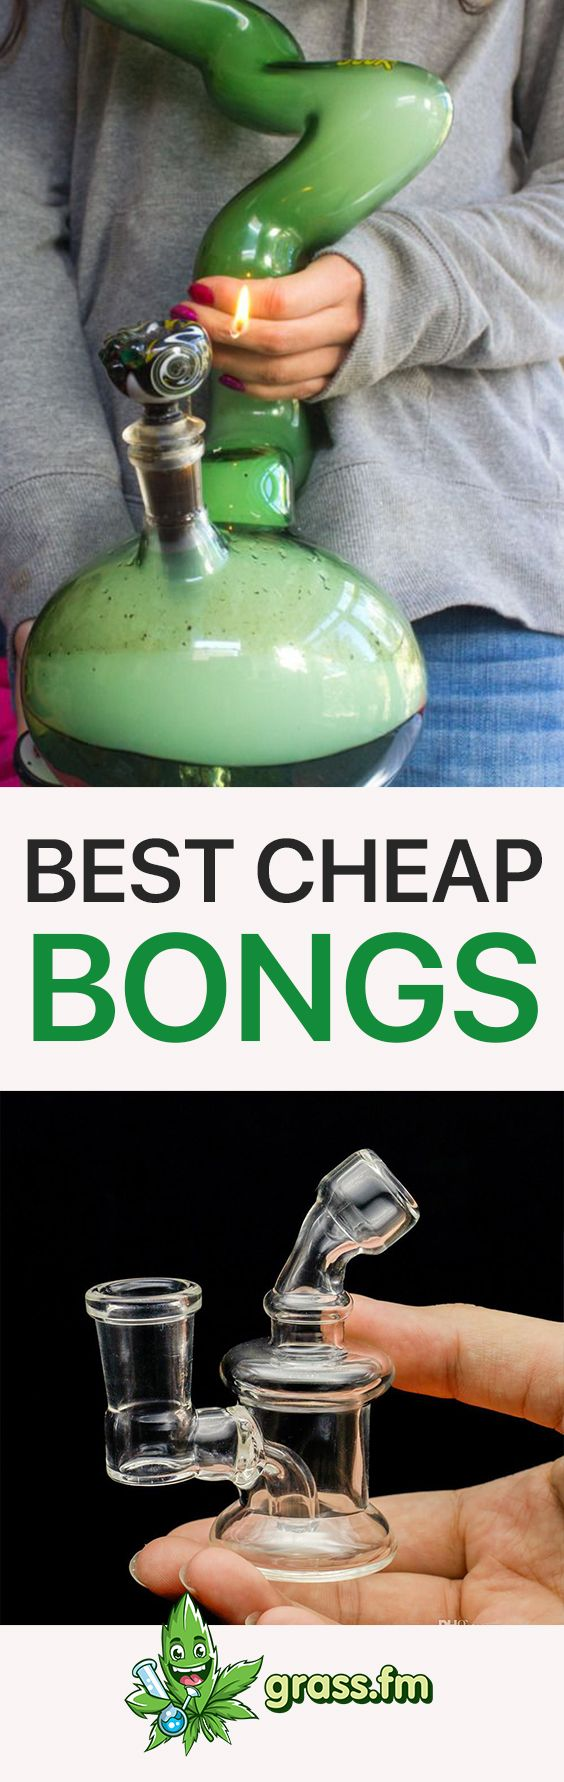 Click here to discover the best cheap bongs! #marijuana #pipe #weed #420 #bong #stoner